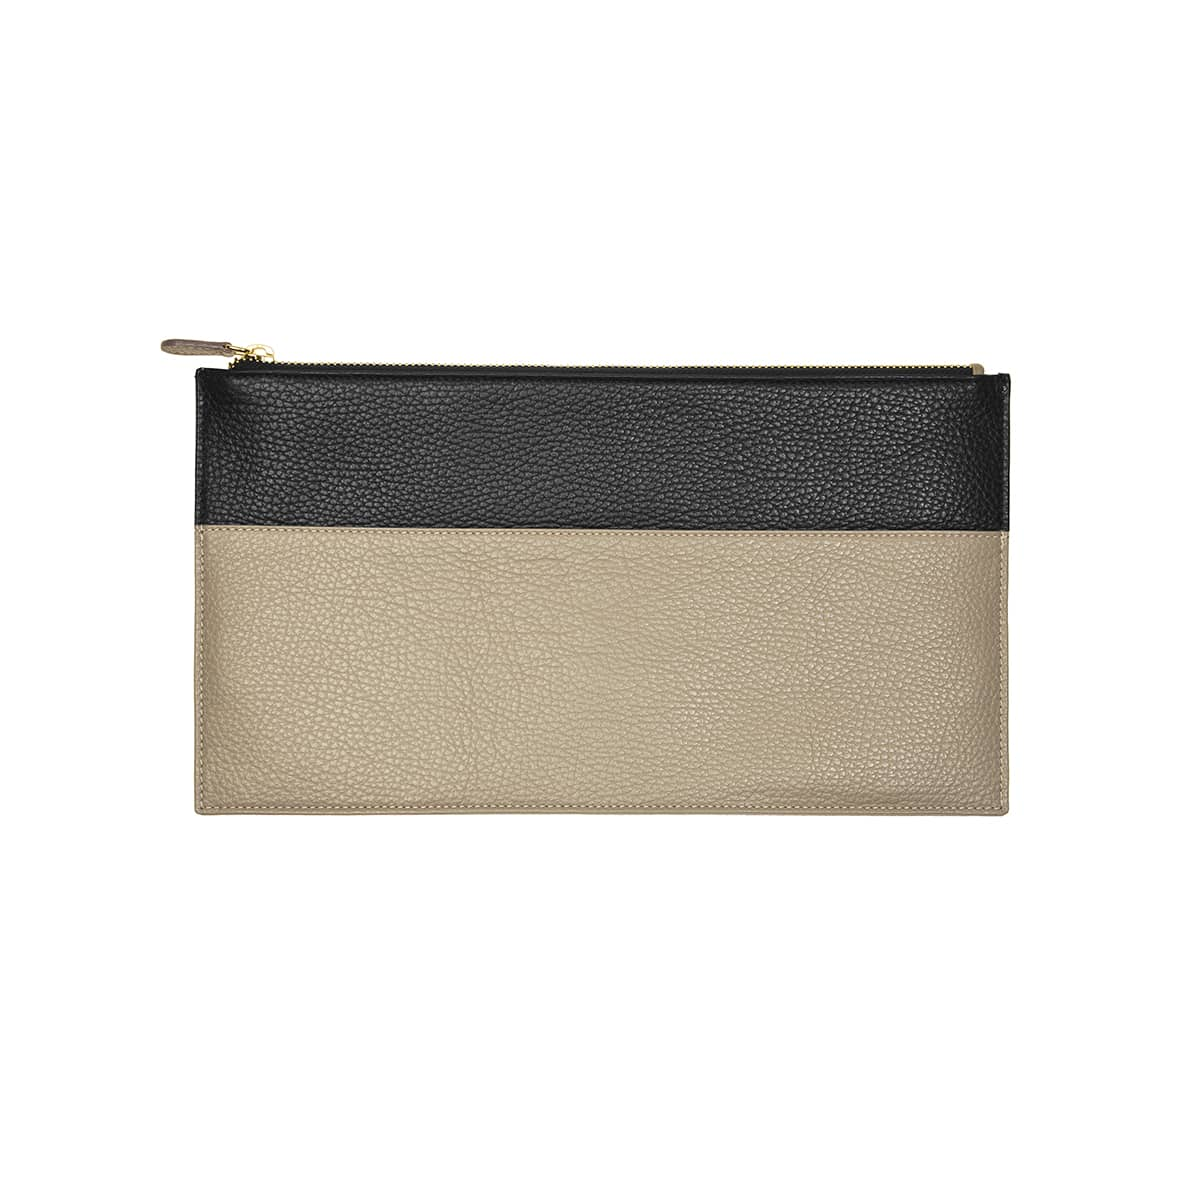 pochette plate cuir handmade collection constance taupe noir l'Erudite Concept Store